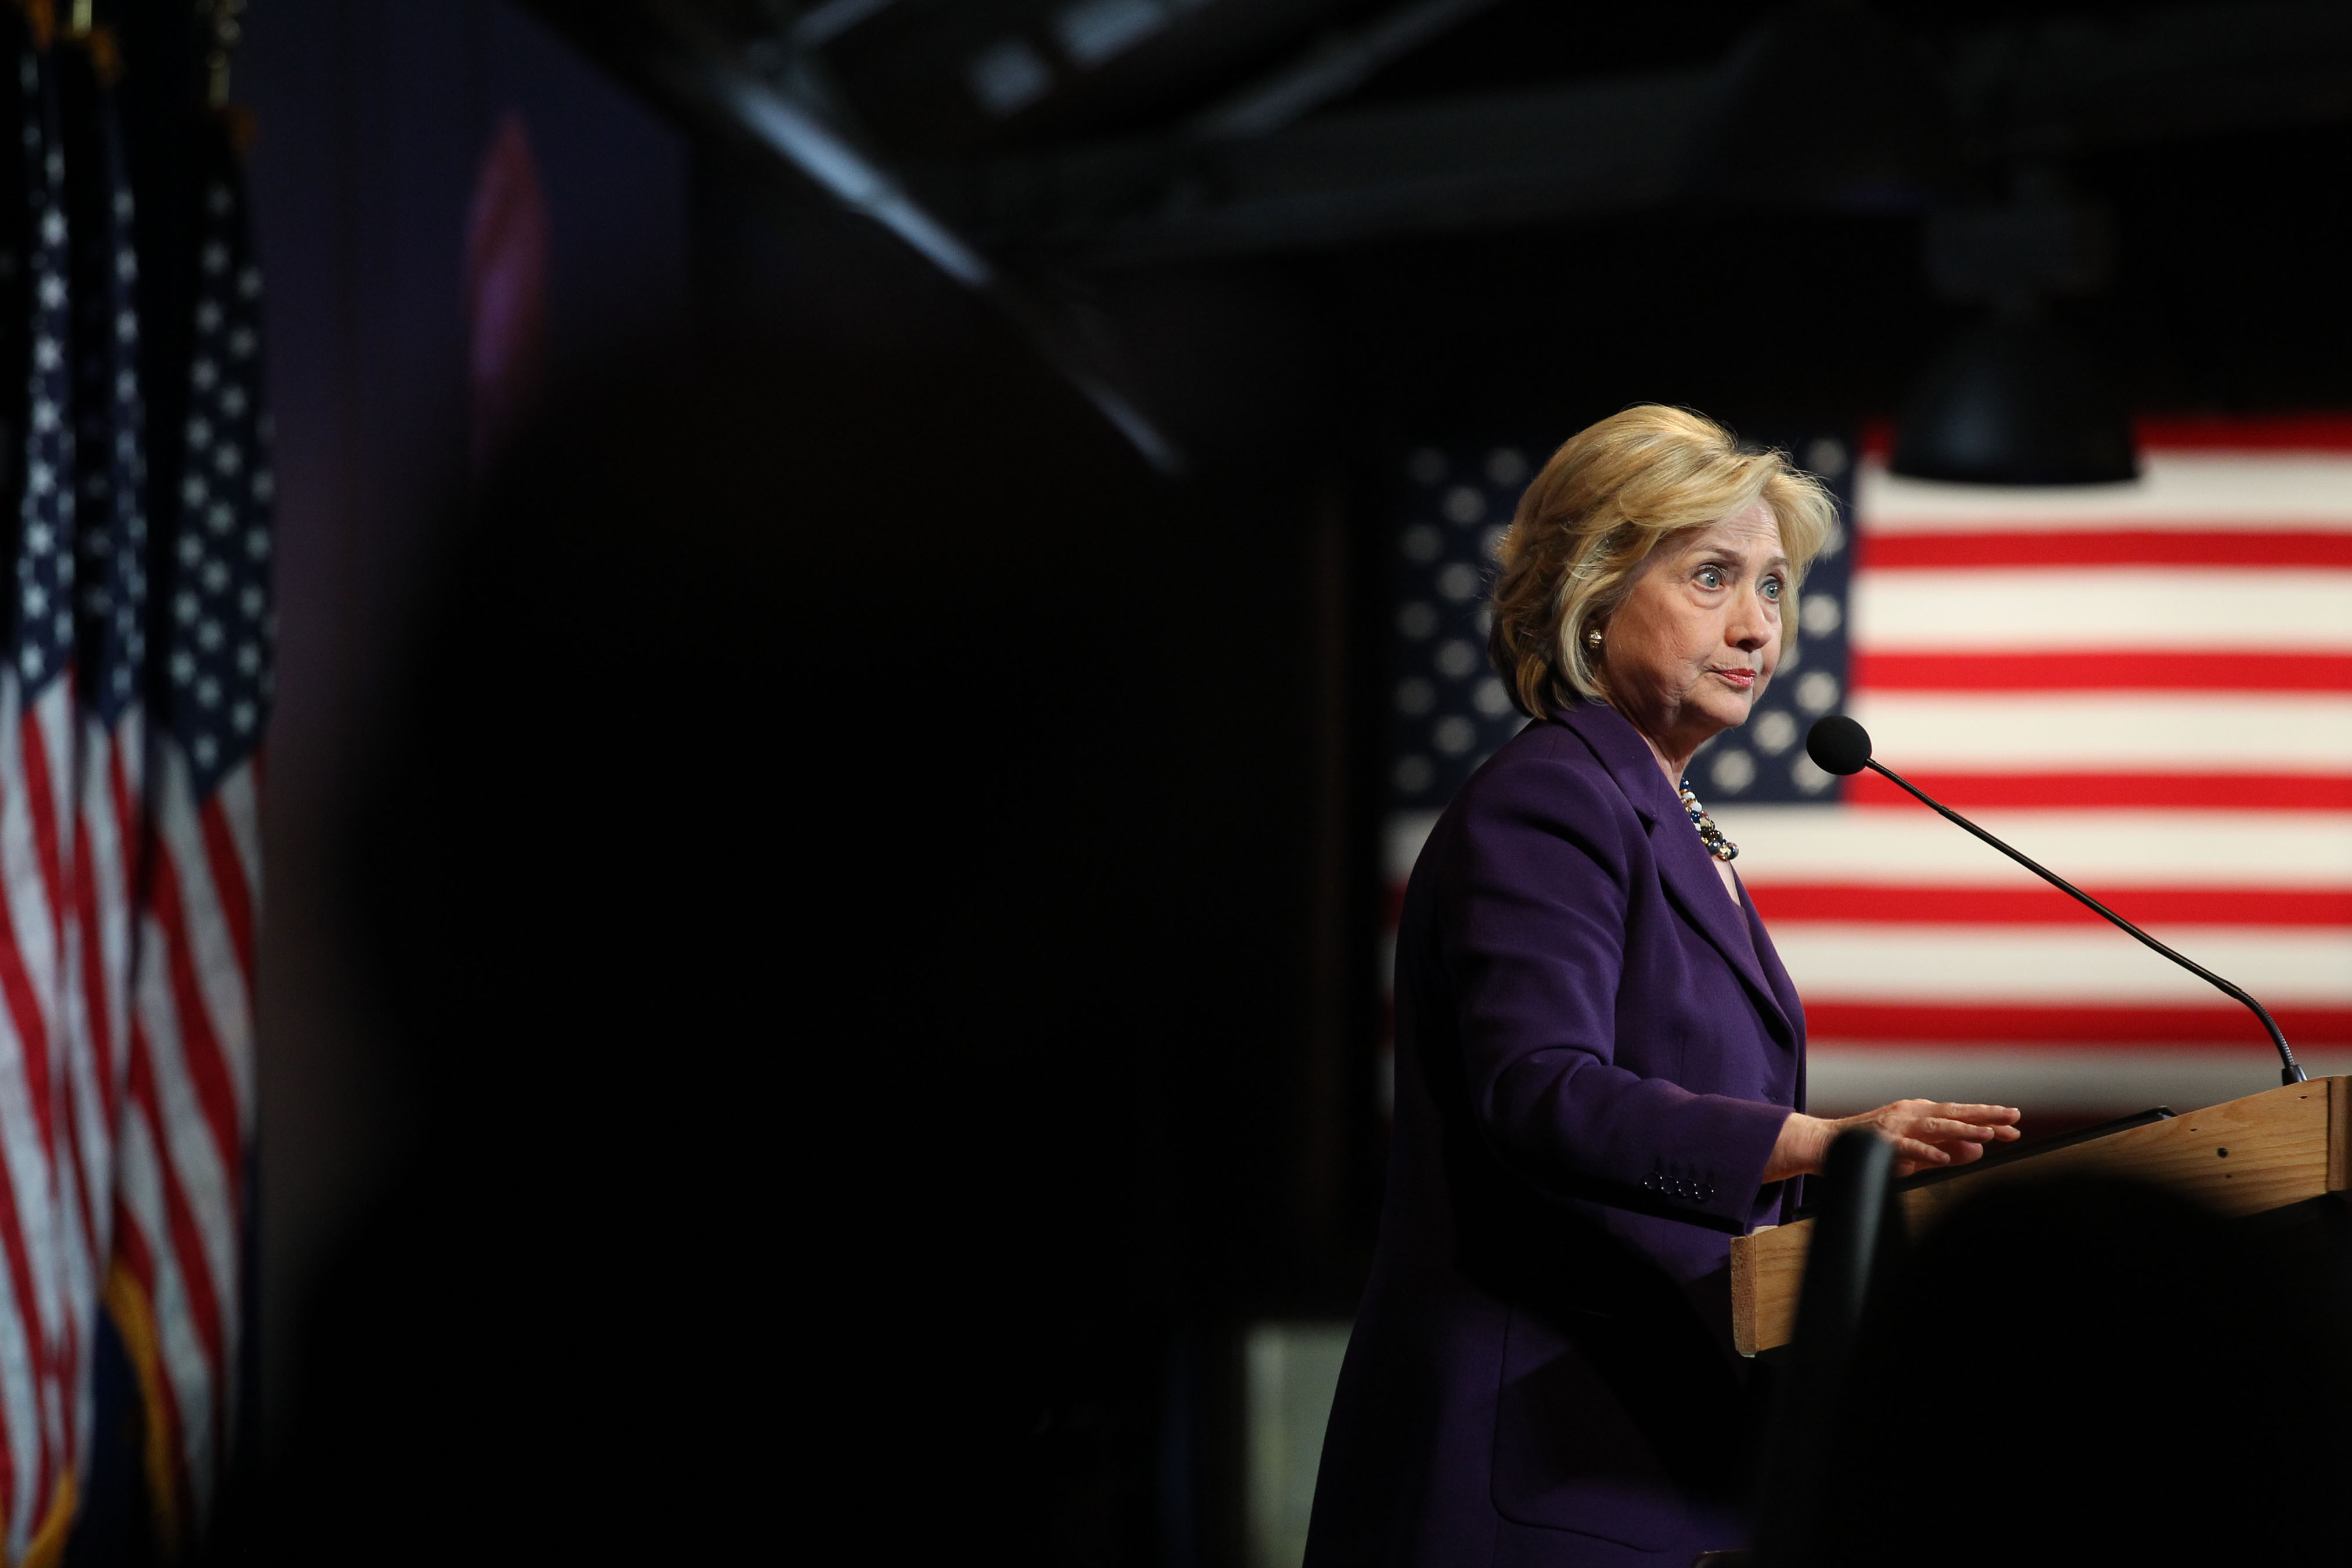 hillary clinton foreign affairs essay Despite -- and in some cases because of -- her four-year record as secretary of state, democrat hillary clinton is coming in for a share of criticism from allies and adversaries alike foreign affairs analyst vladimir mikheev.